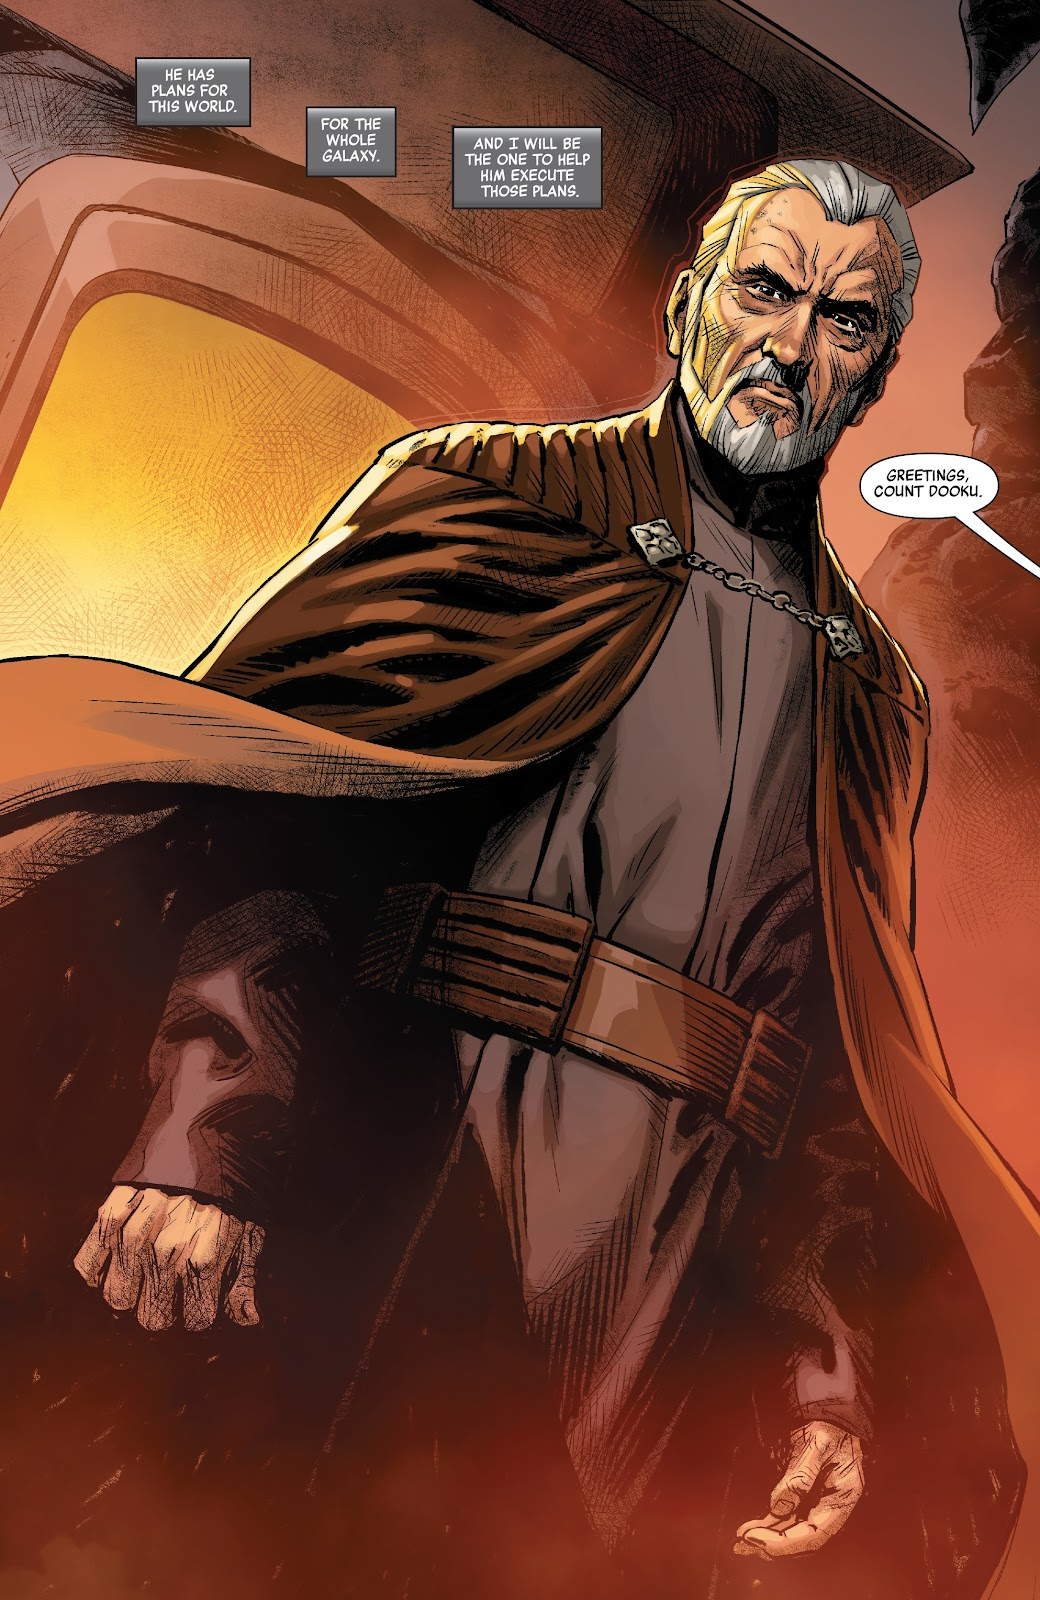 Read online Star Wars: Age of Republic - Count Dooku comic -  Issue # Full - 4